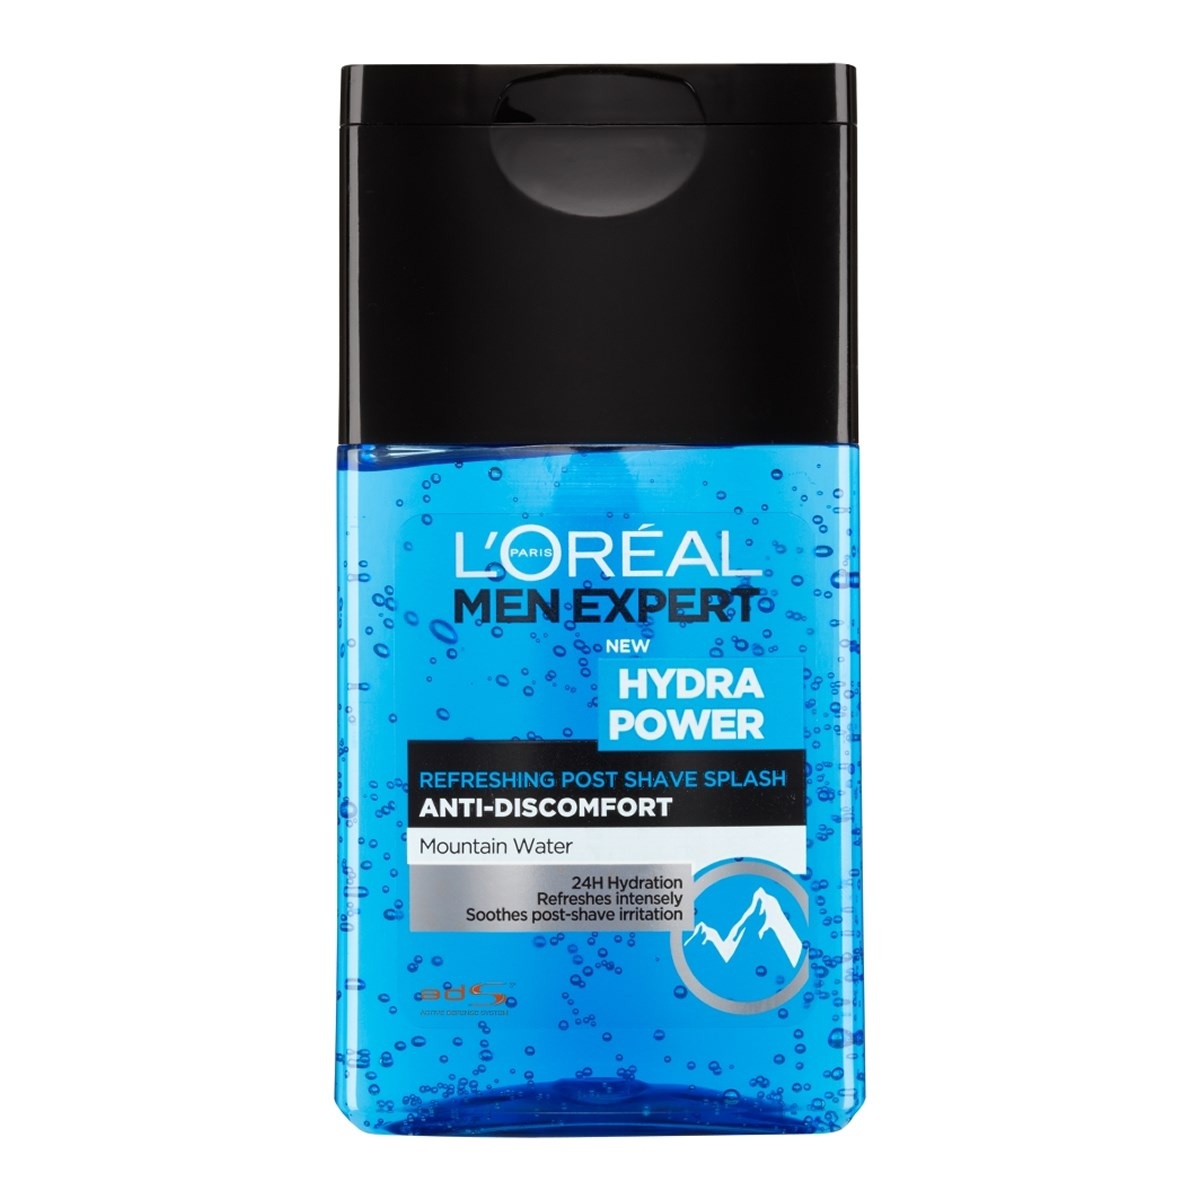 L'Oreal Paris Men Expert Hydra Power Refreshing Post Shave Splash